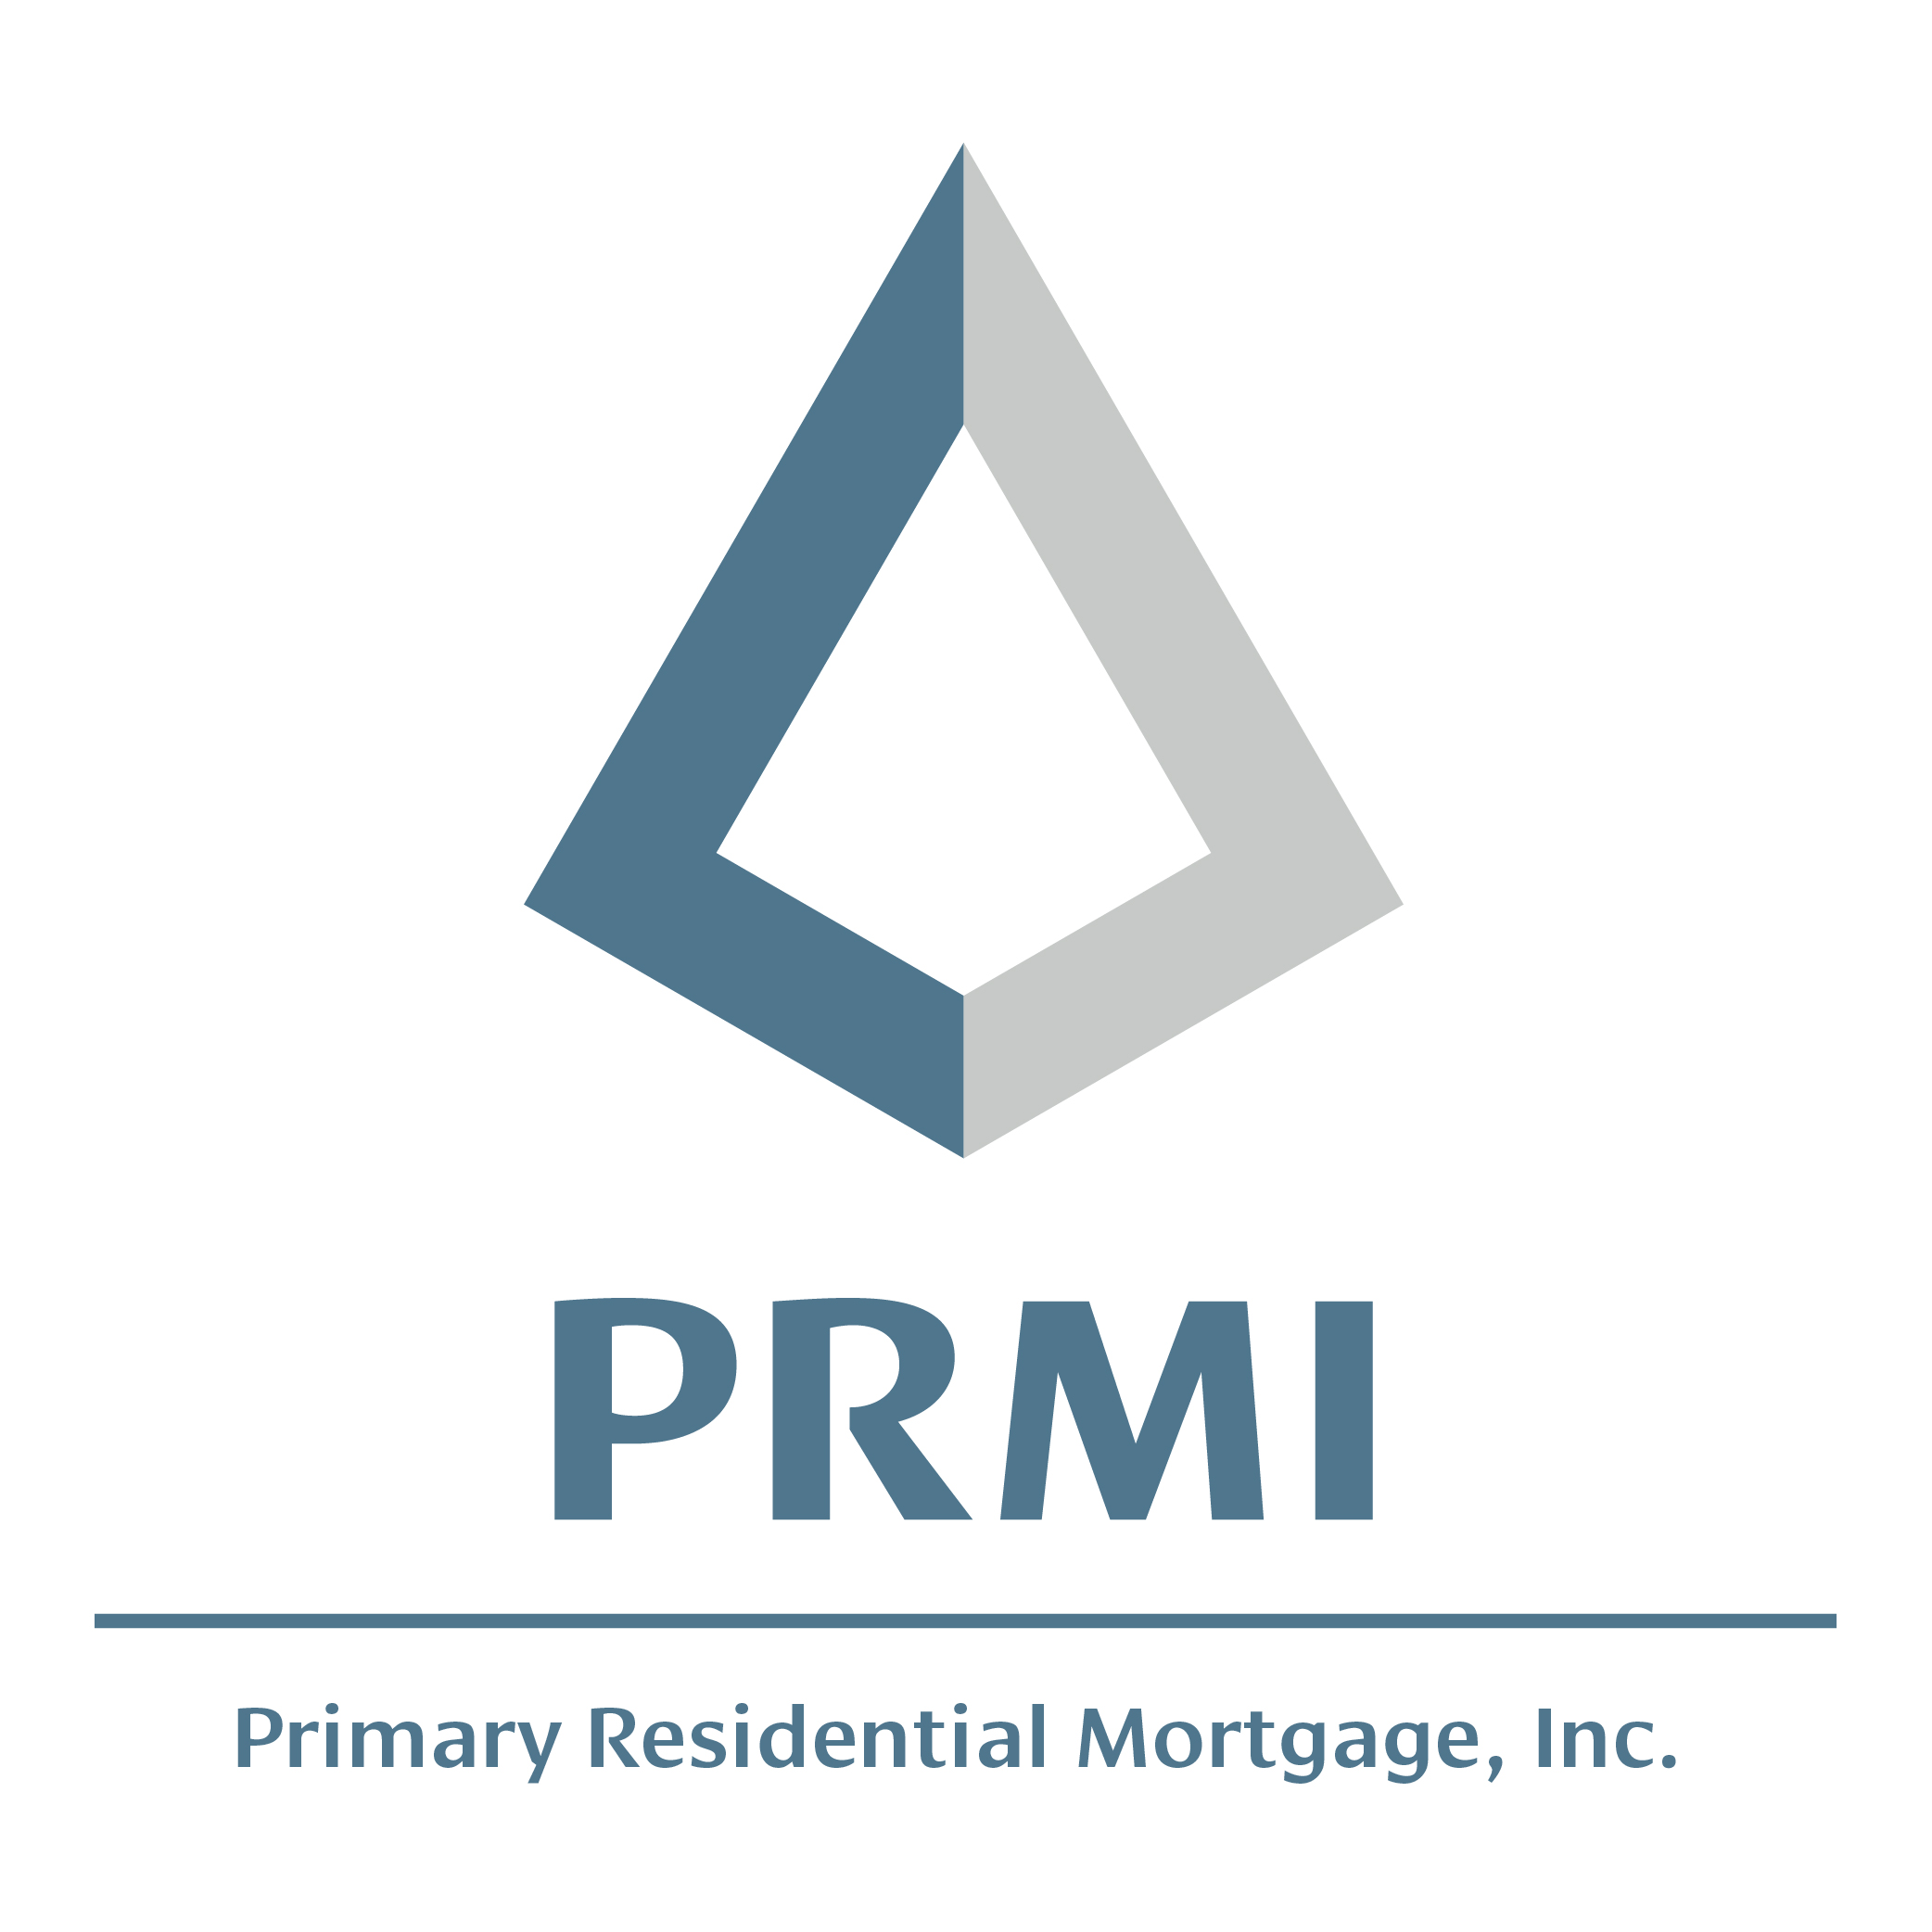 Primary Residential Mortgage, Inc. - Anchorage, AK 99503 - (907)885-2855 | ShowMeLocal.com